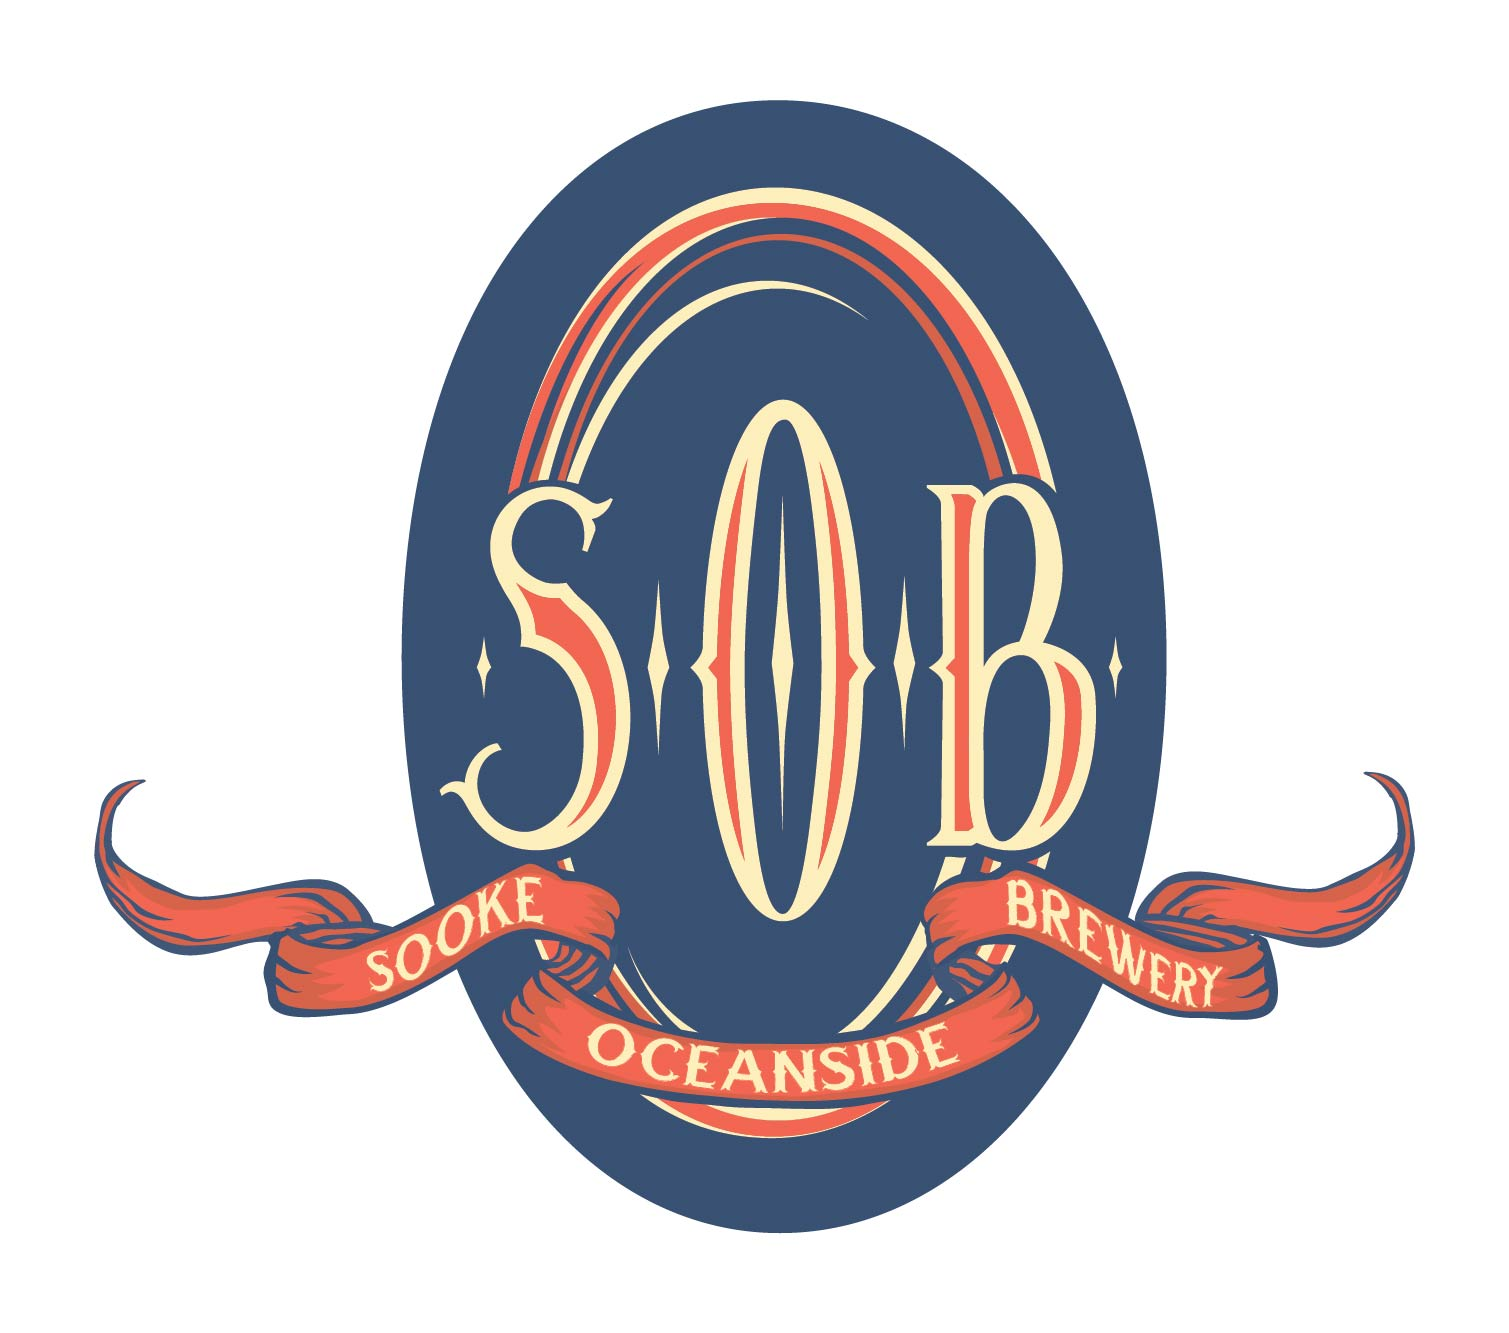 Copy of Sooke Oceanside Brewery